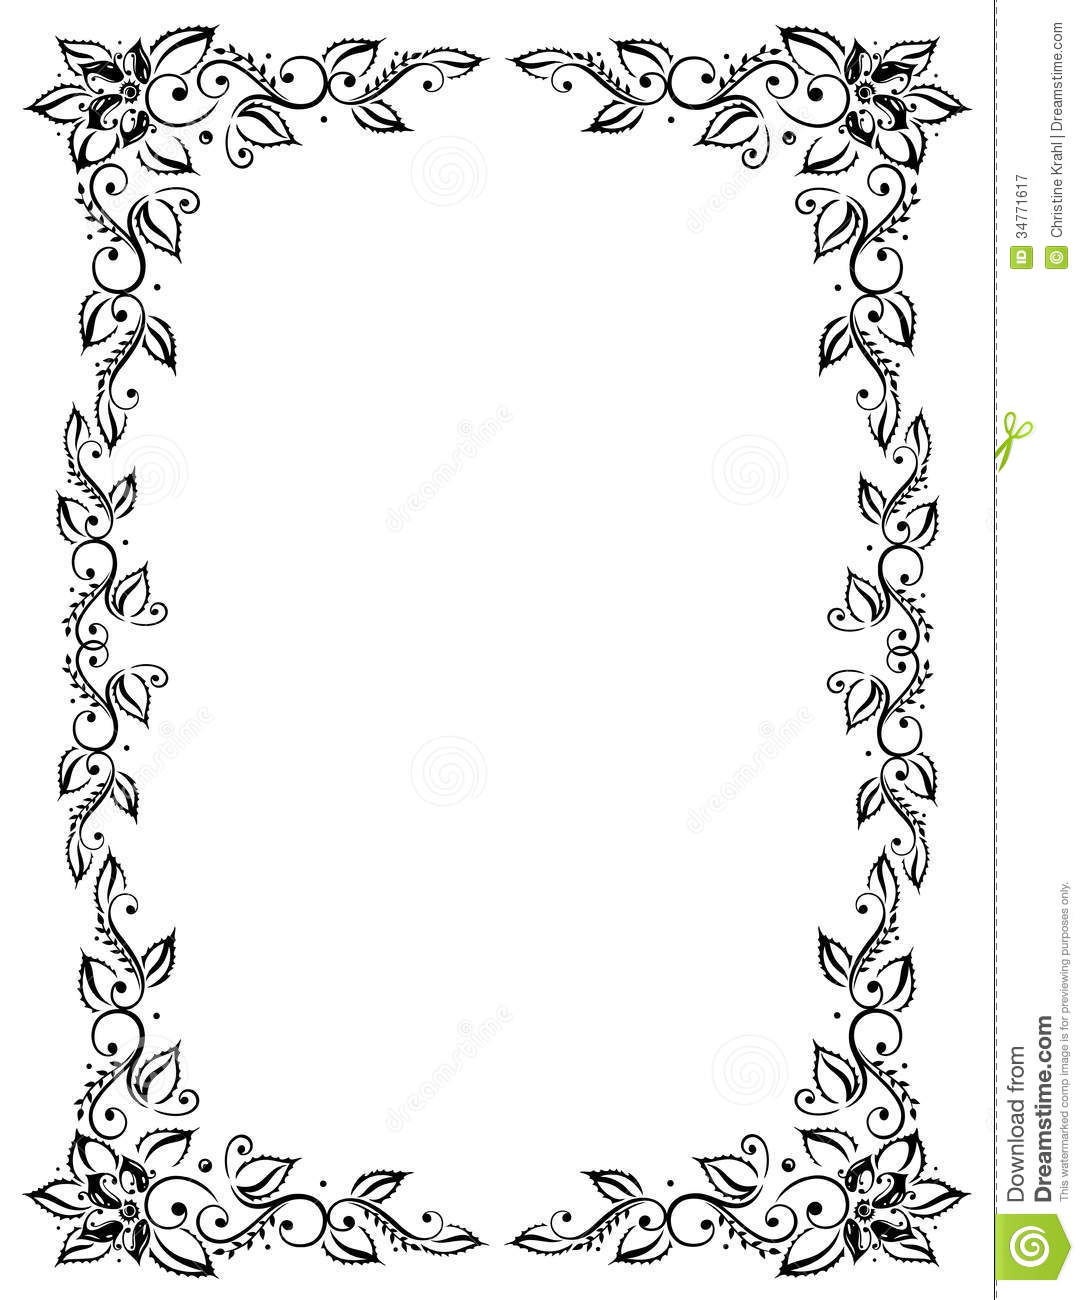 Squares clipart filigree Frame Filigree art frame black